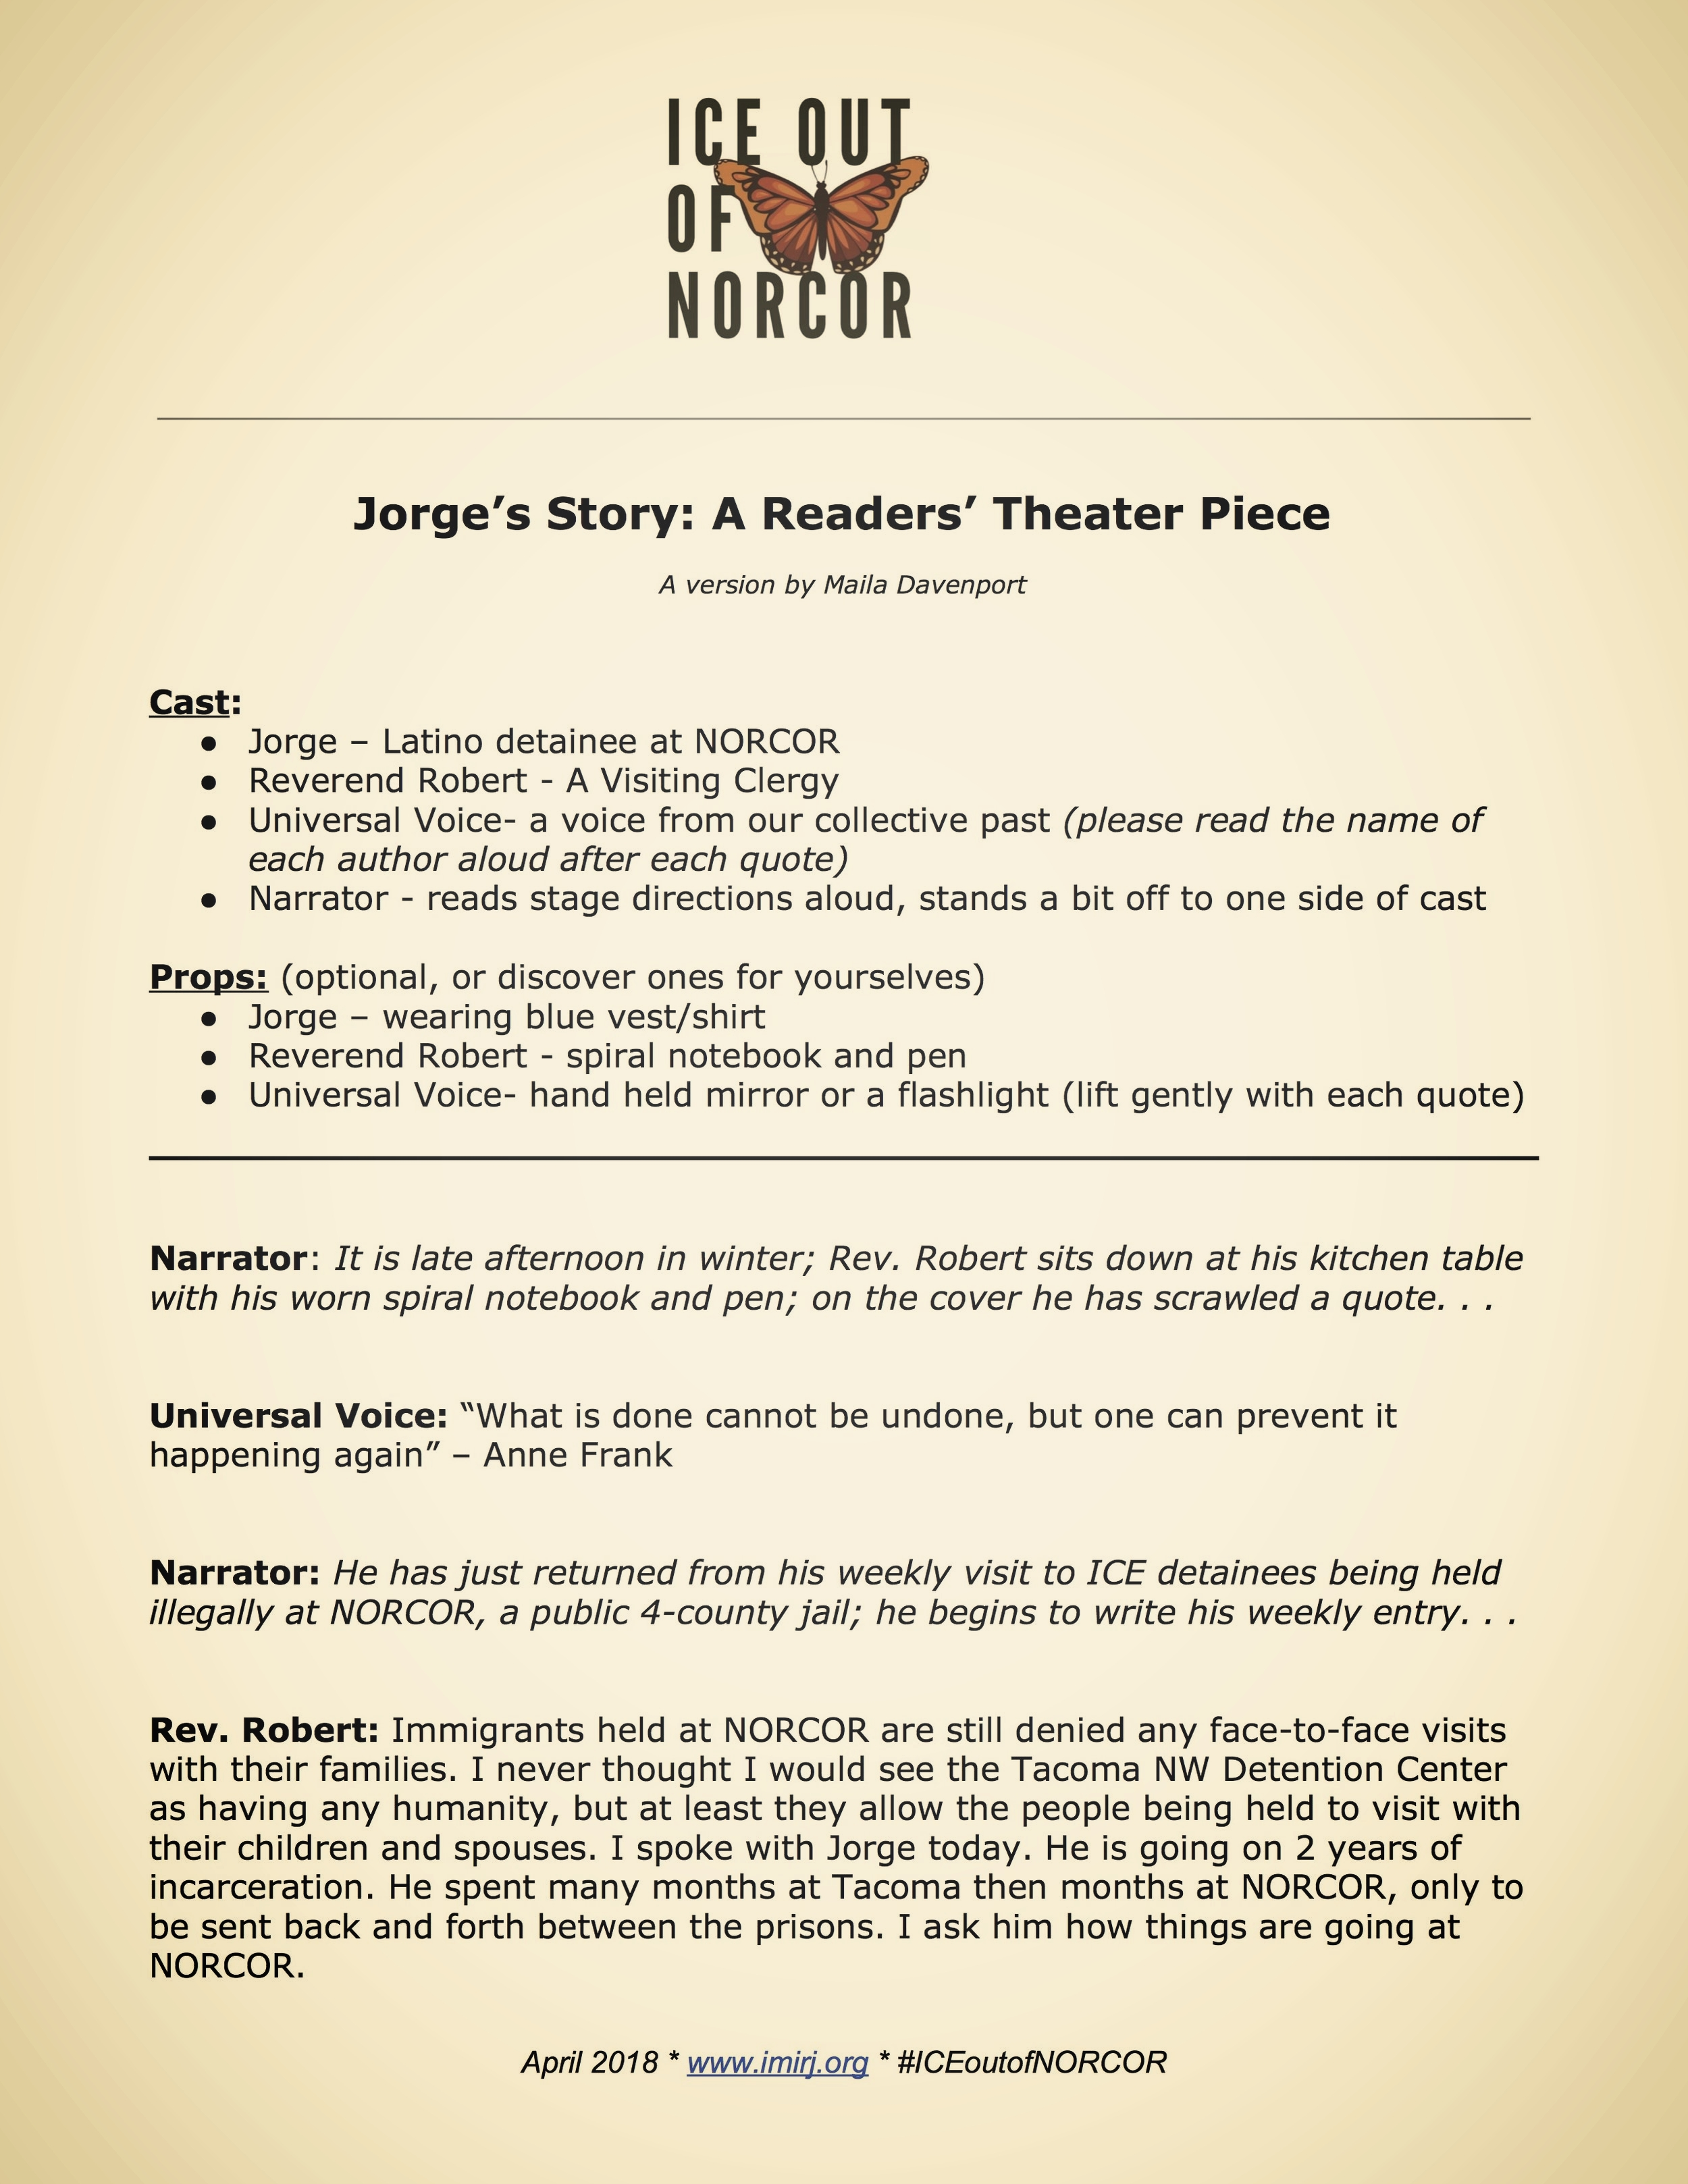 Jorge's Story: A Readers' Theater